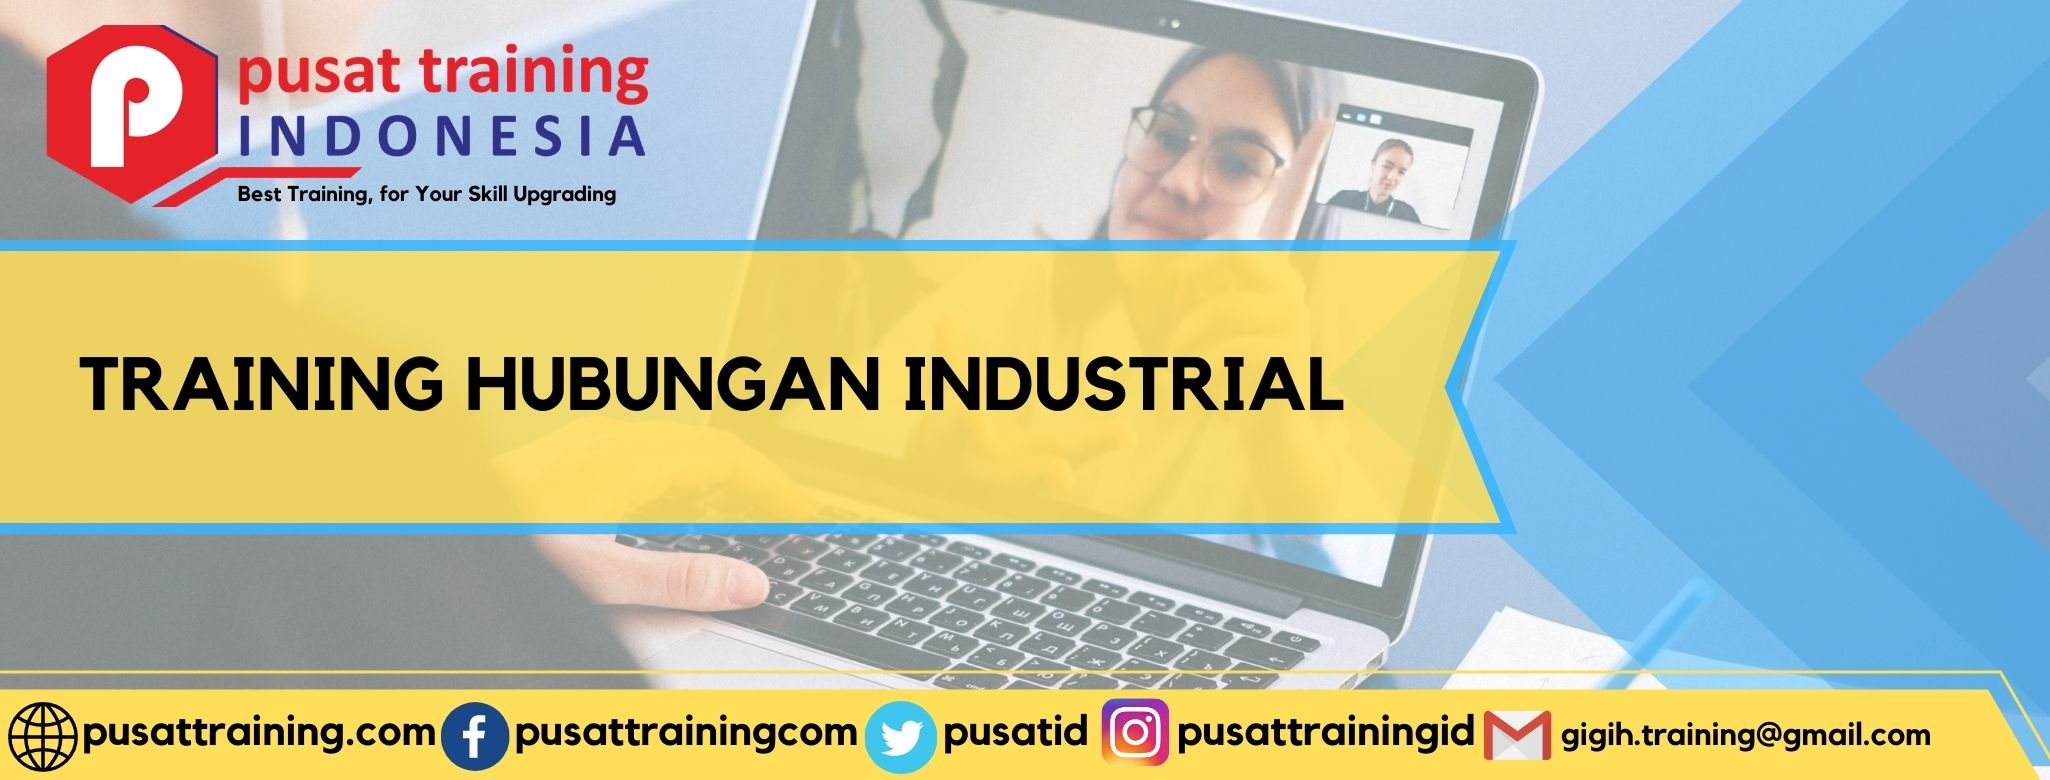 TRAINING HUBUNGAN INDUSTRIAL